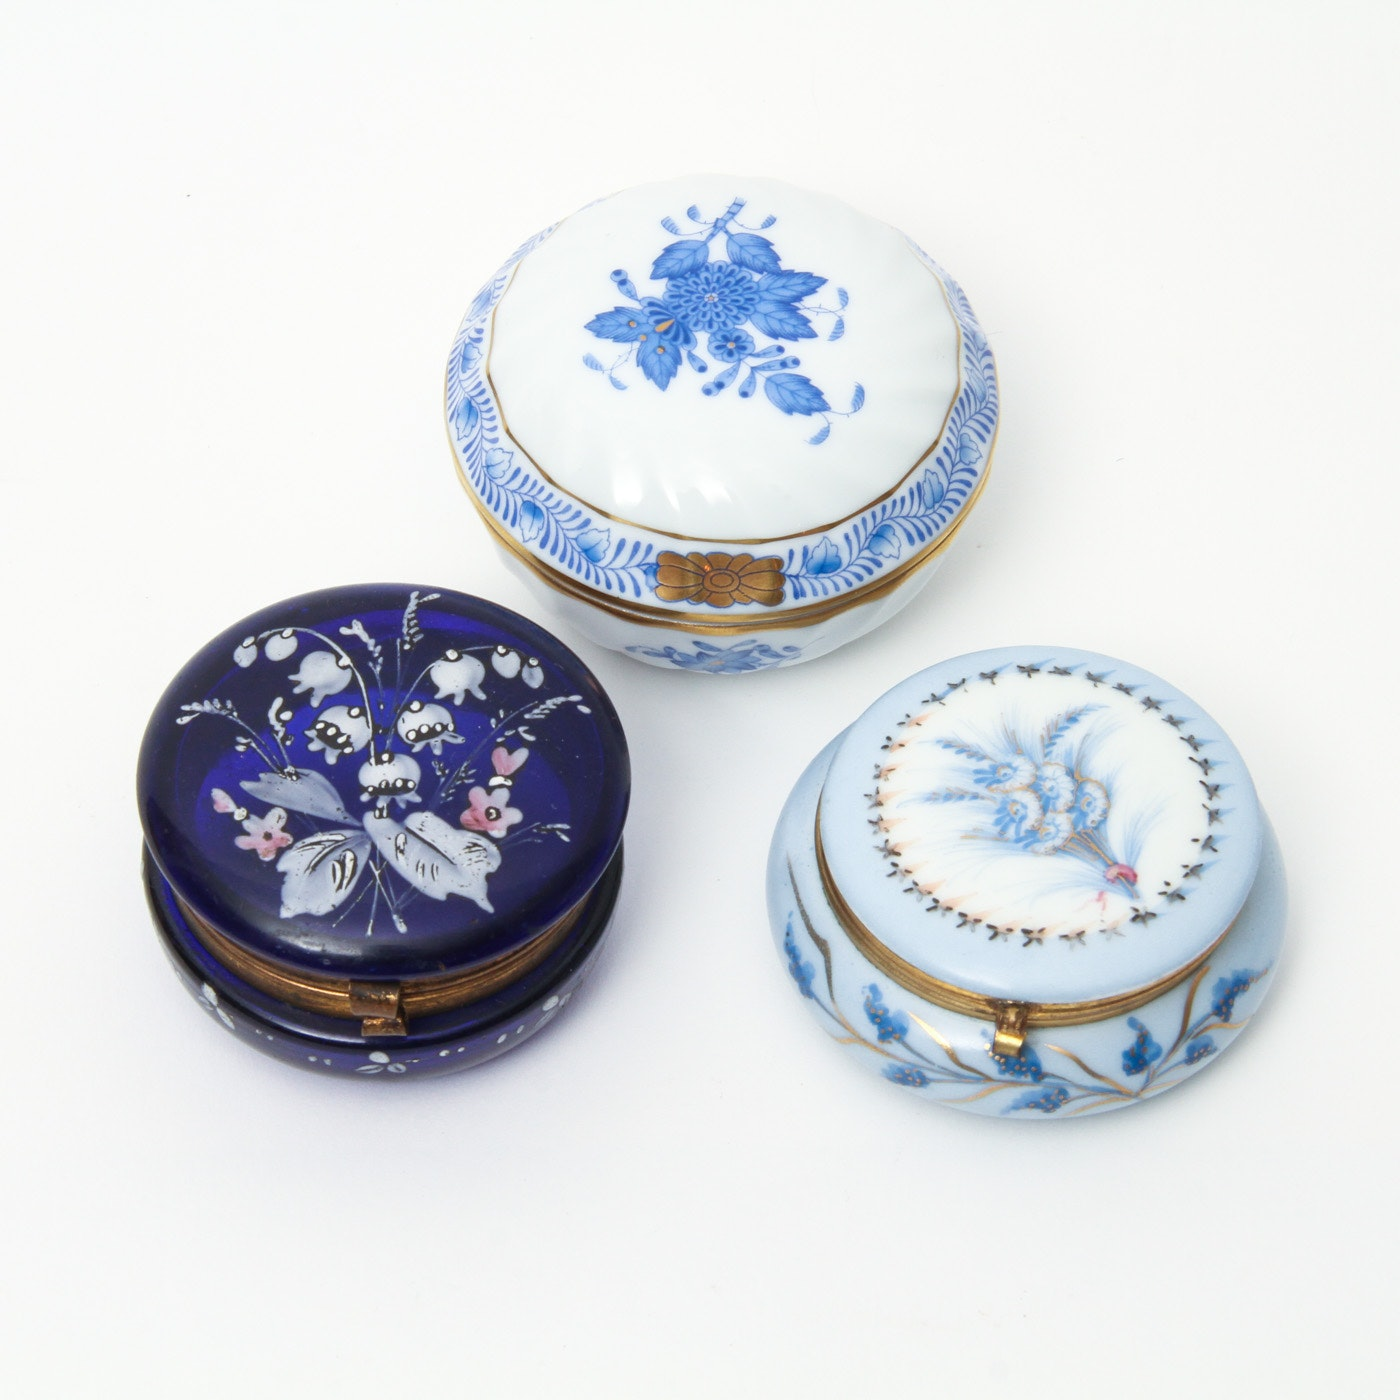 Antique Glass and Porcelain Trinket Boxes